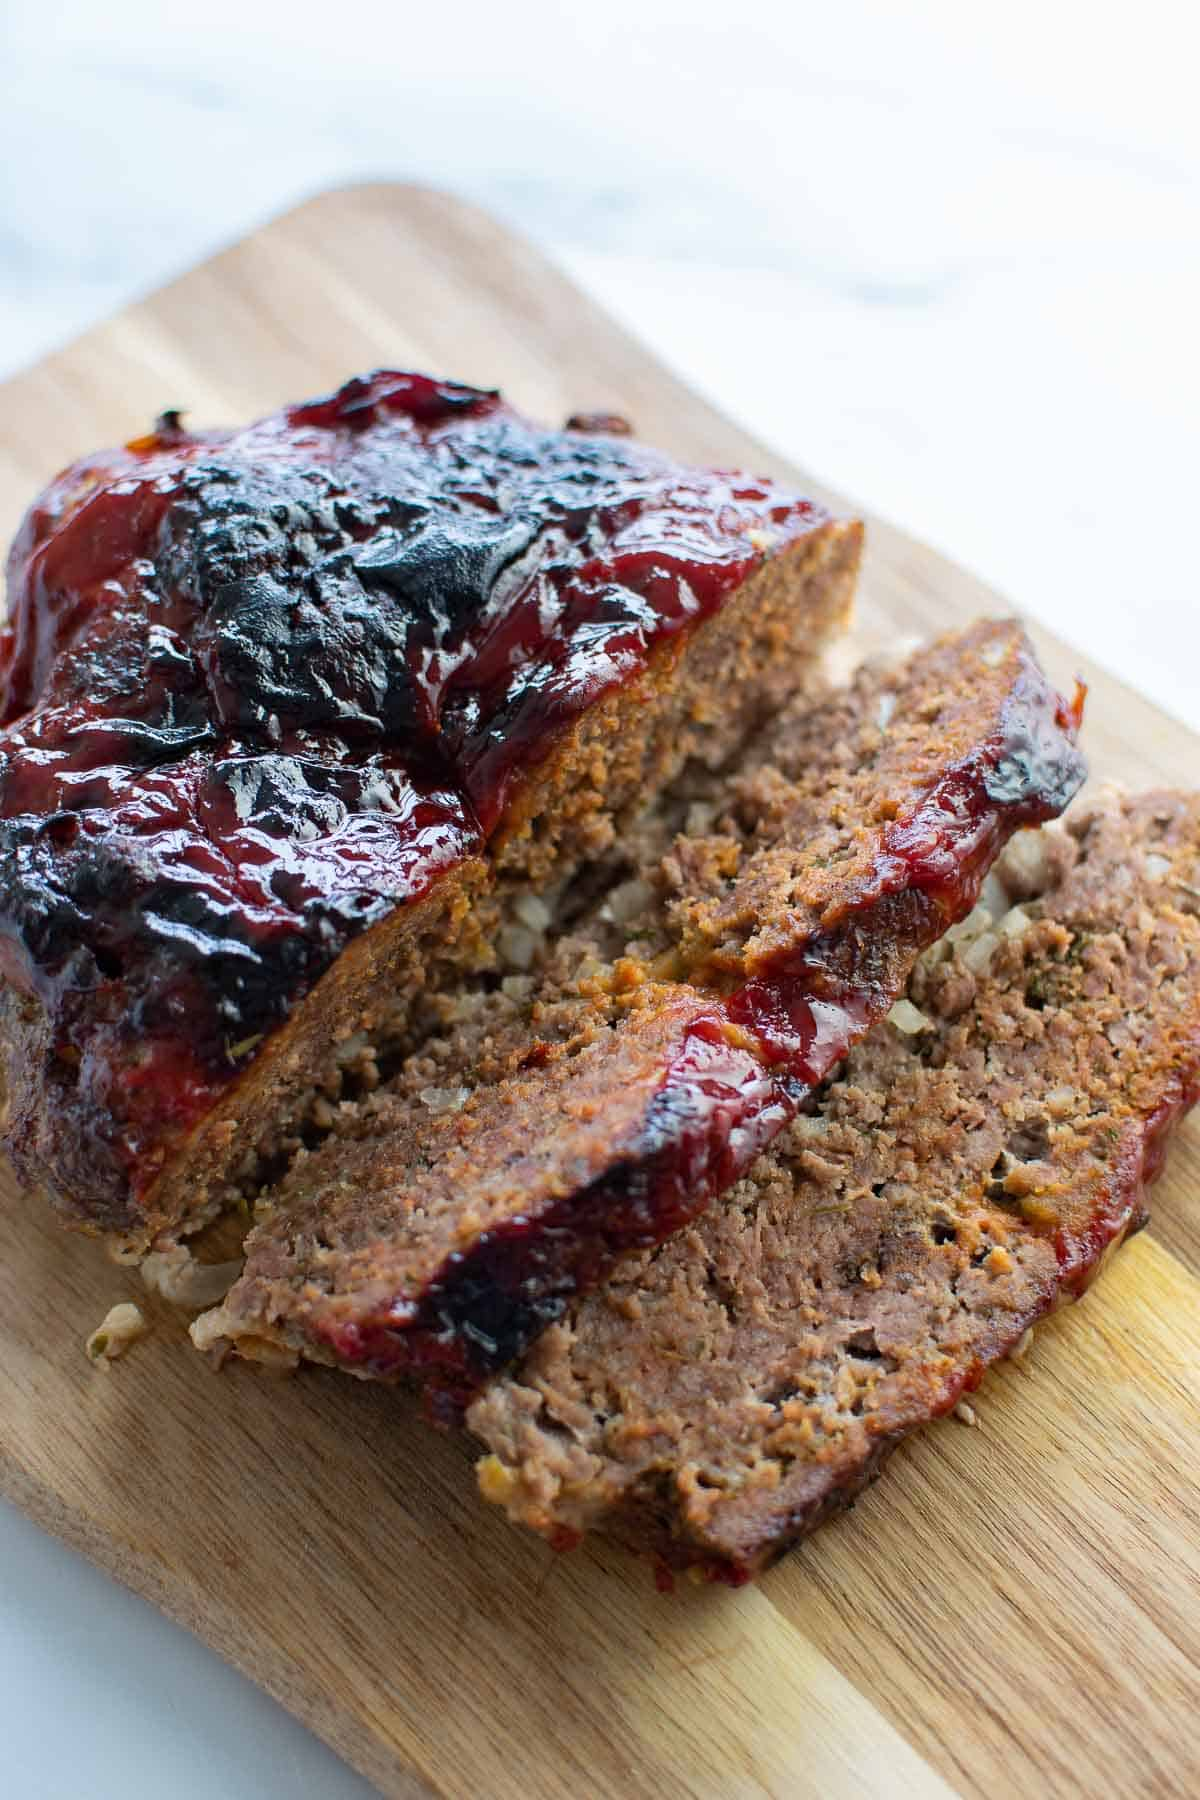 Sliced air fried meatloaf on a wooden board.